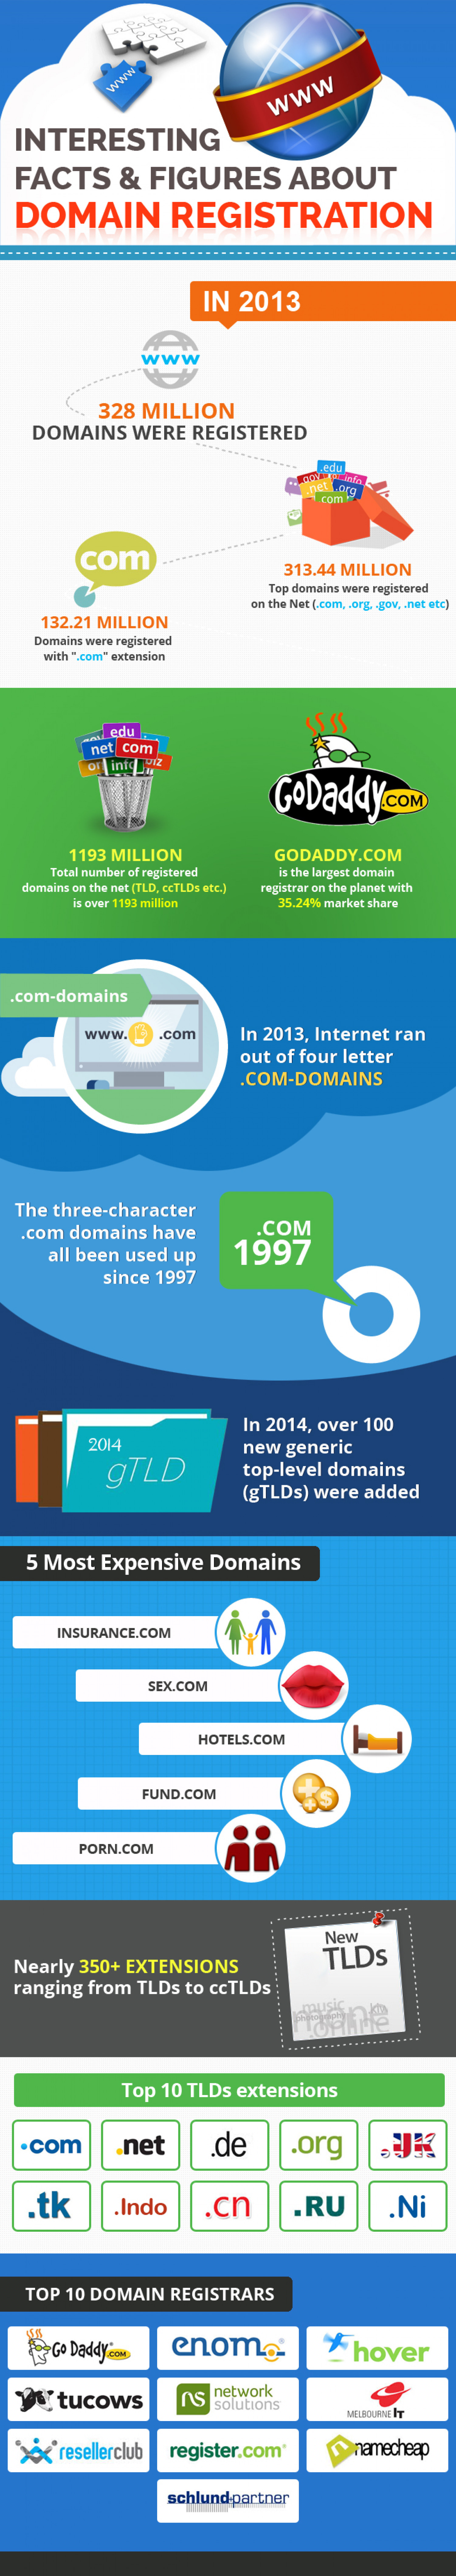 Interesting Facts & Figures About Domain Registration Infographic